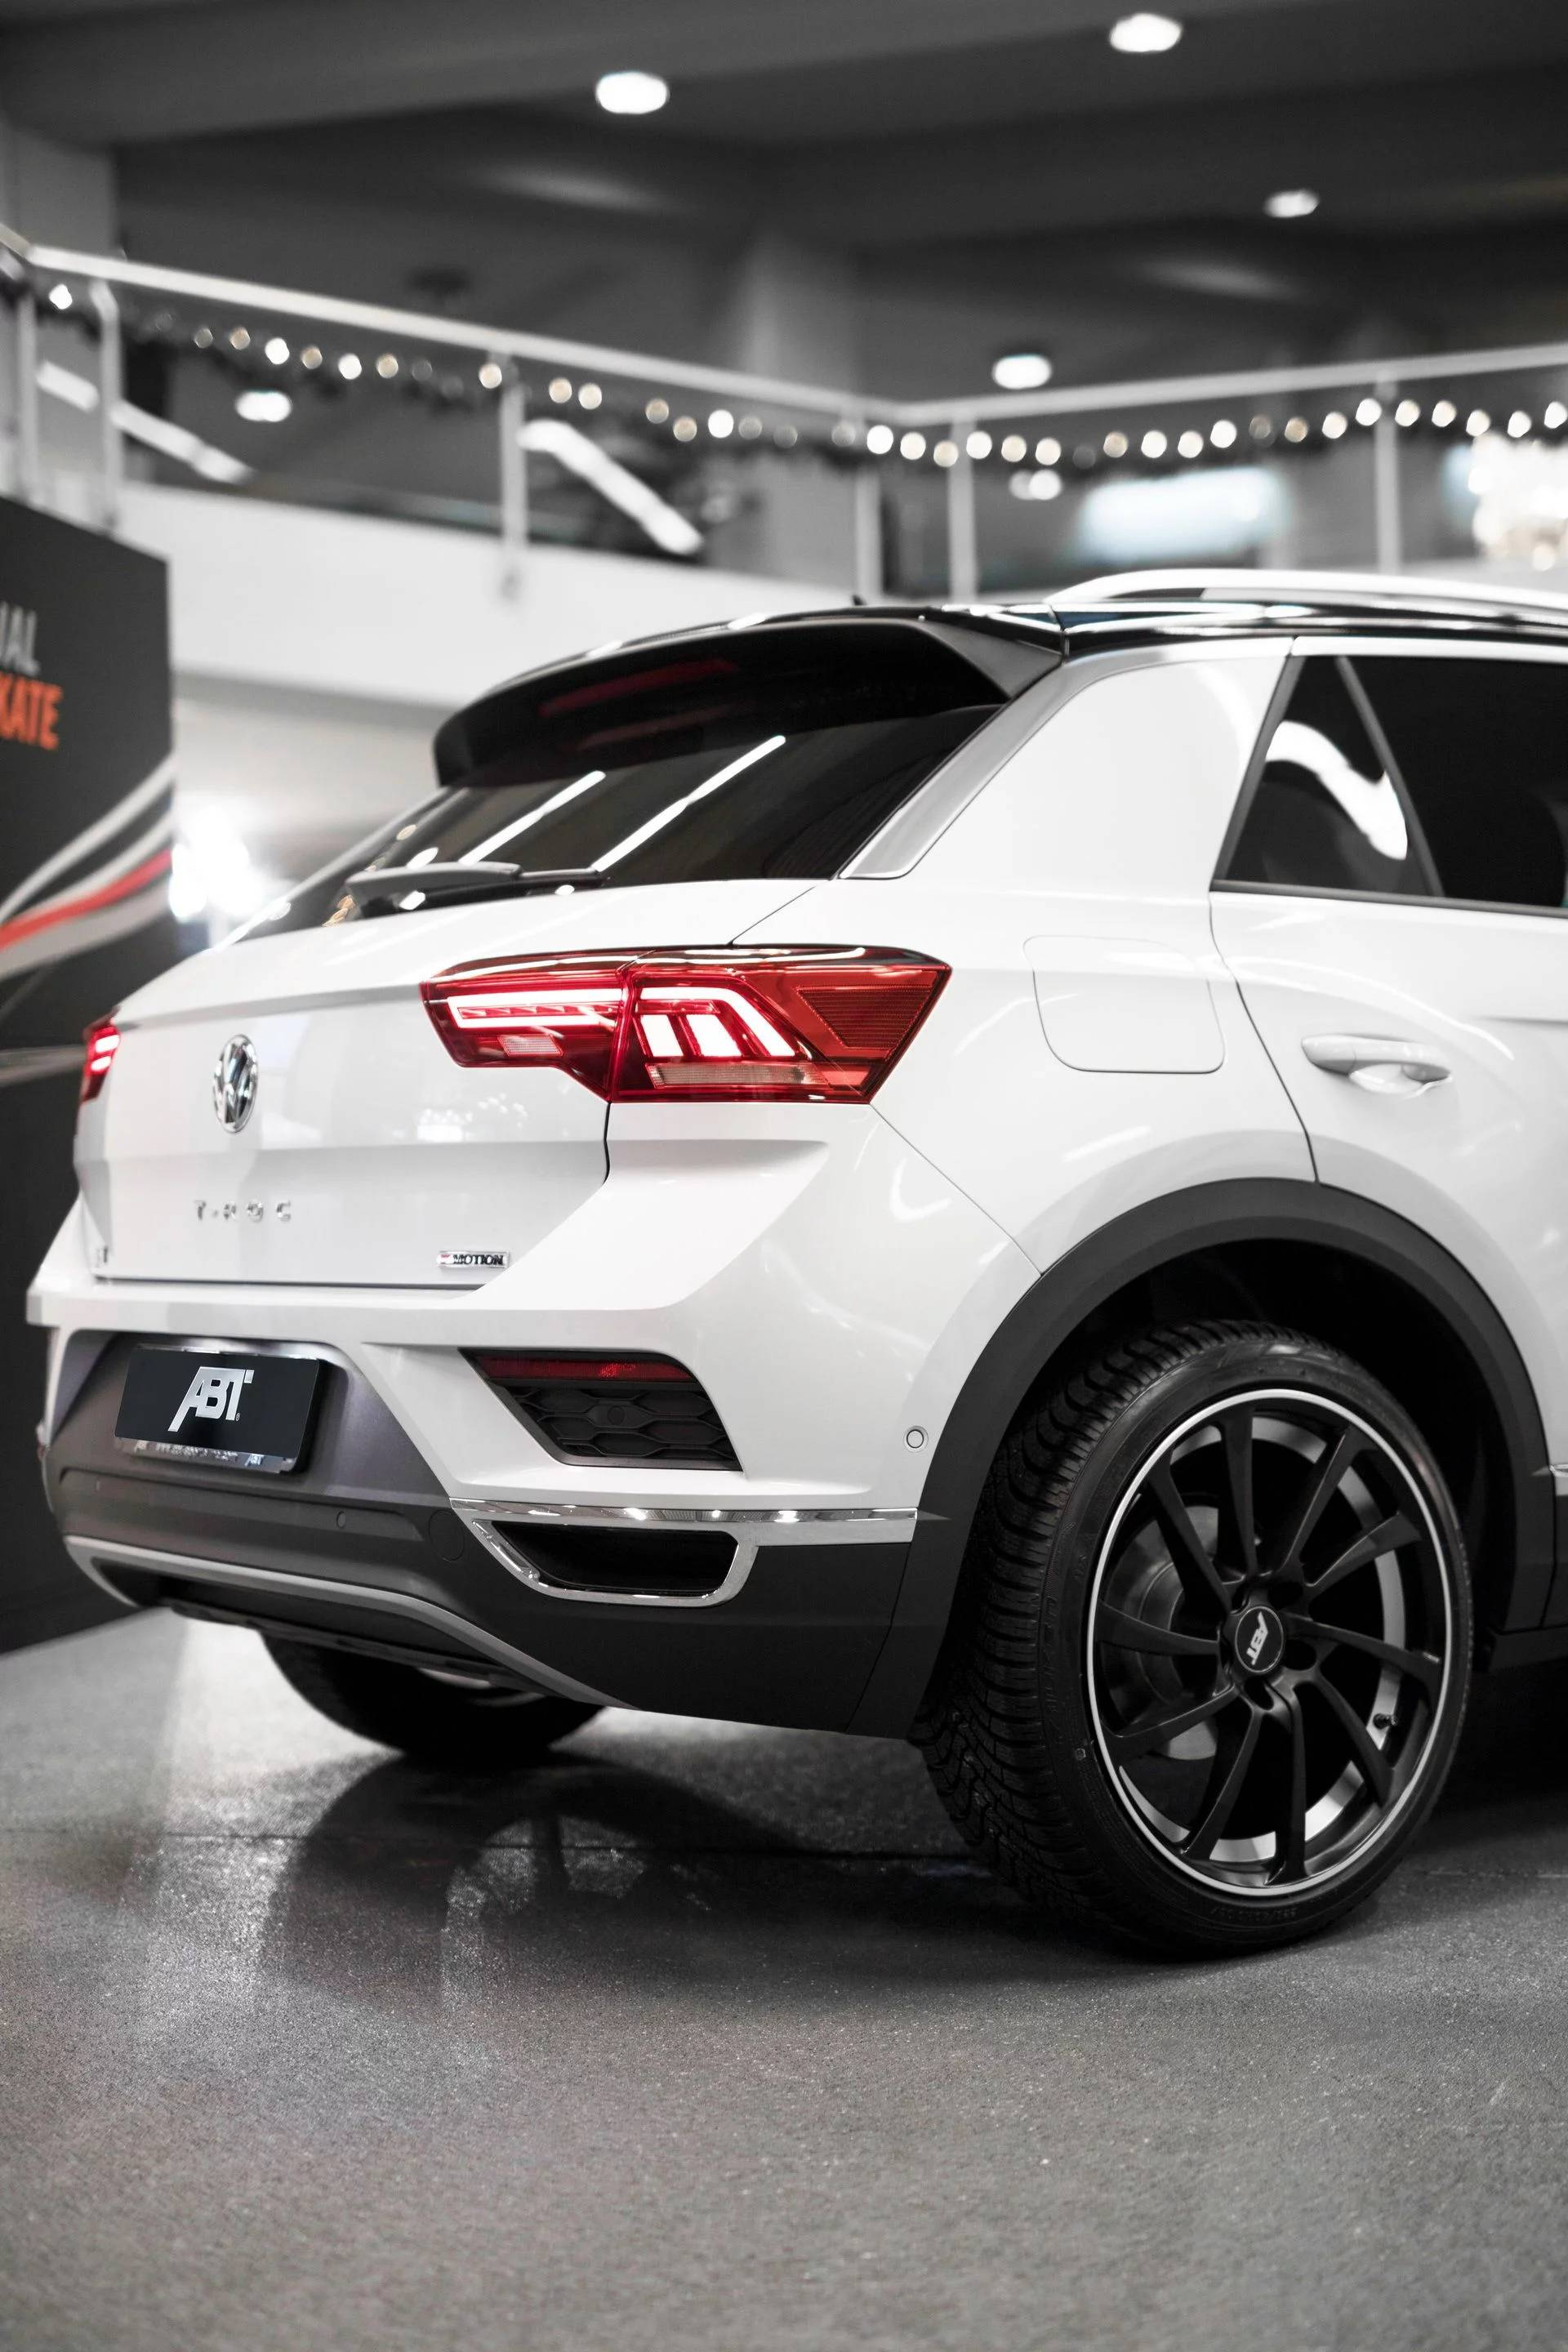 Abts Vw T Roc Wants To Be A High Riding Golf Gti on Tsi 2 0 T Engine